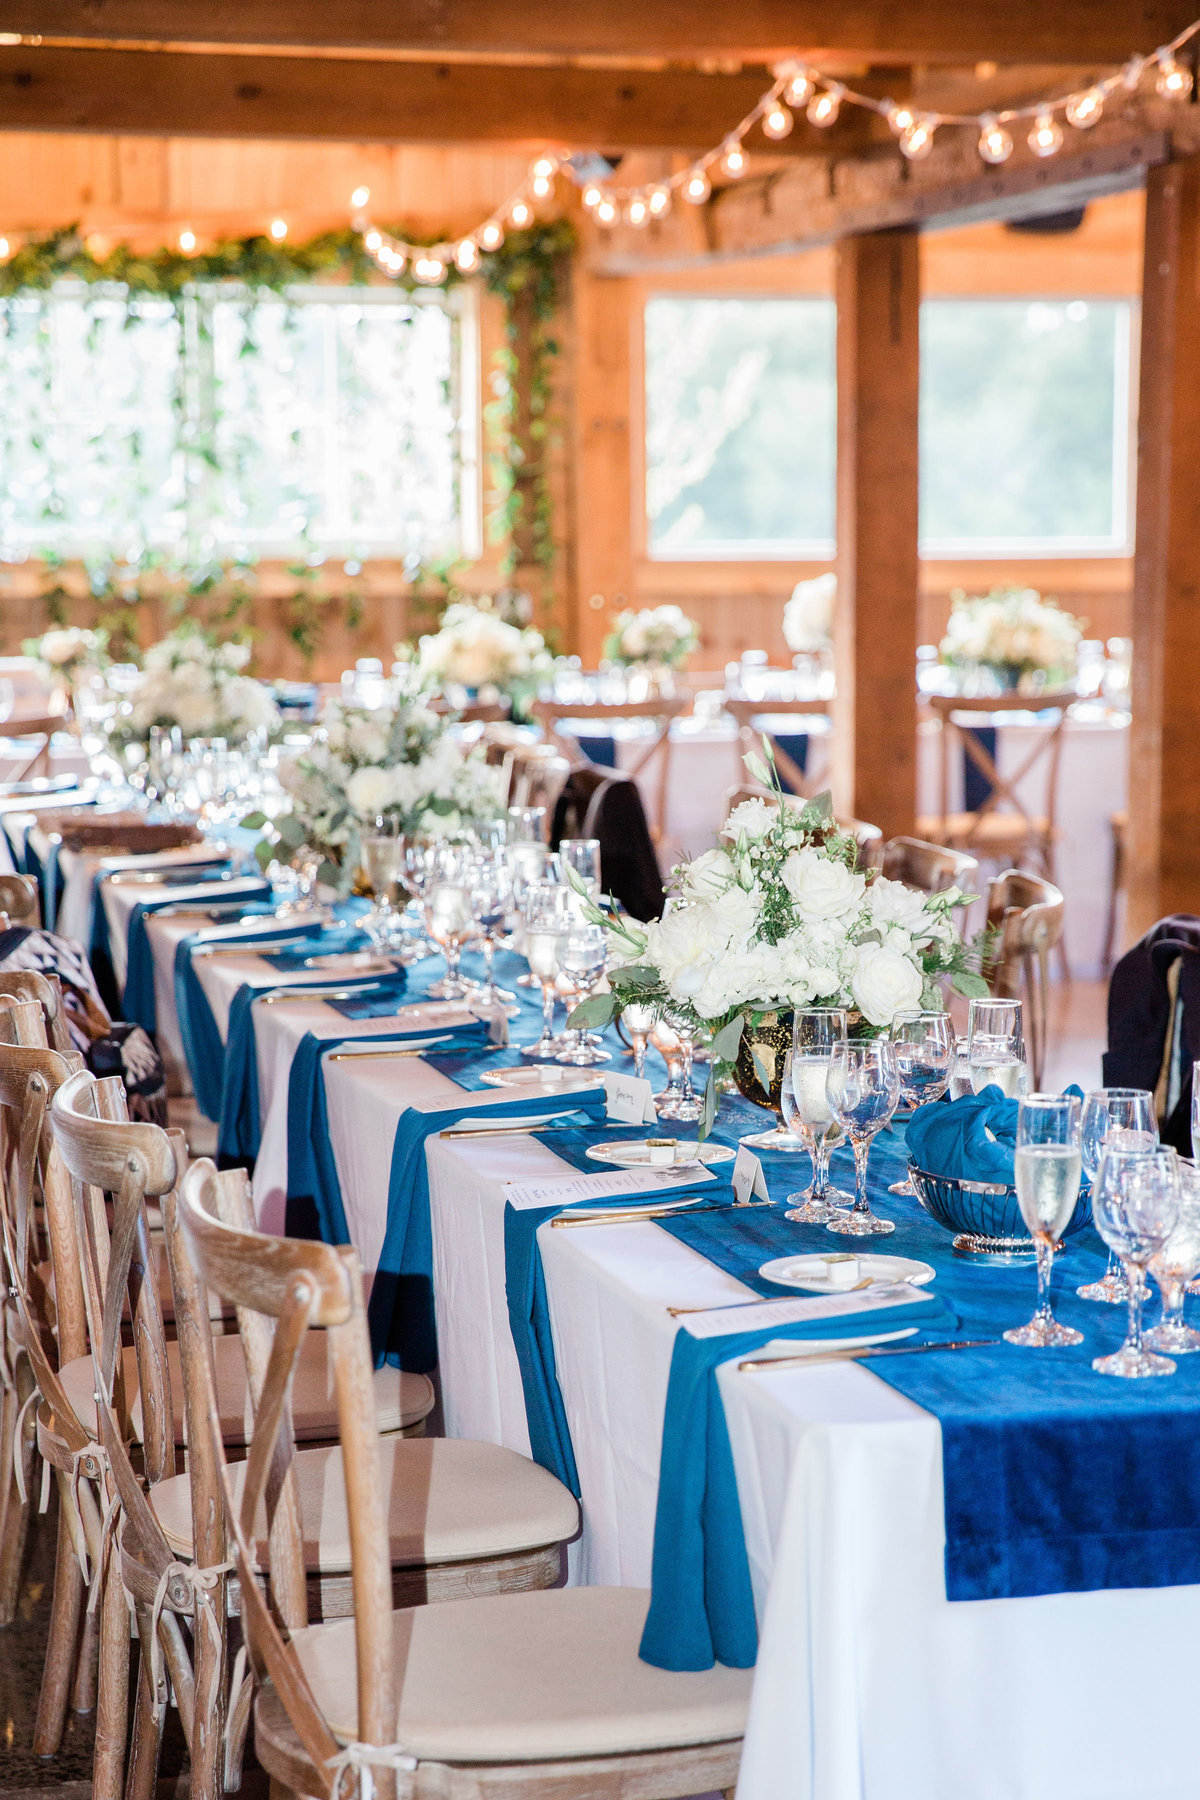 events-by-carianne-event-planner-wedding-planner-outdoor-wedding-mountain-top-wedding-anthropologie-wedding-new-england-boston-rhode-island-maine-new-hampshire-laura-rose-photography 84